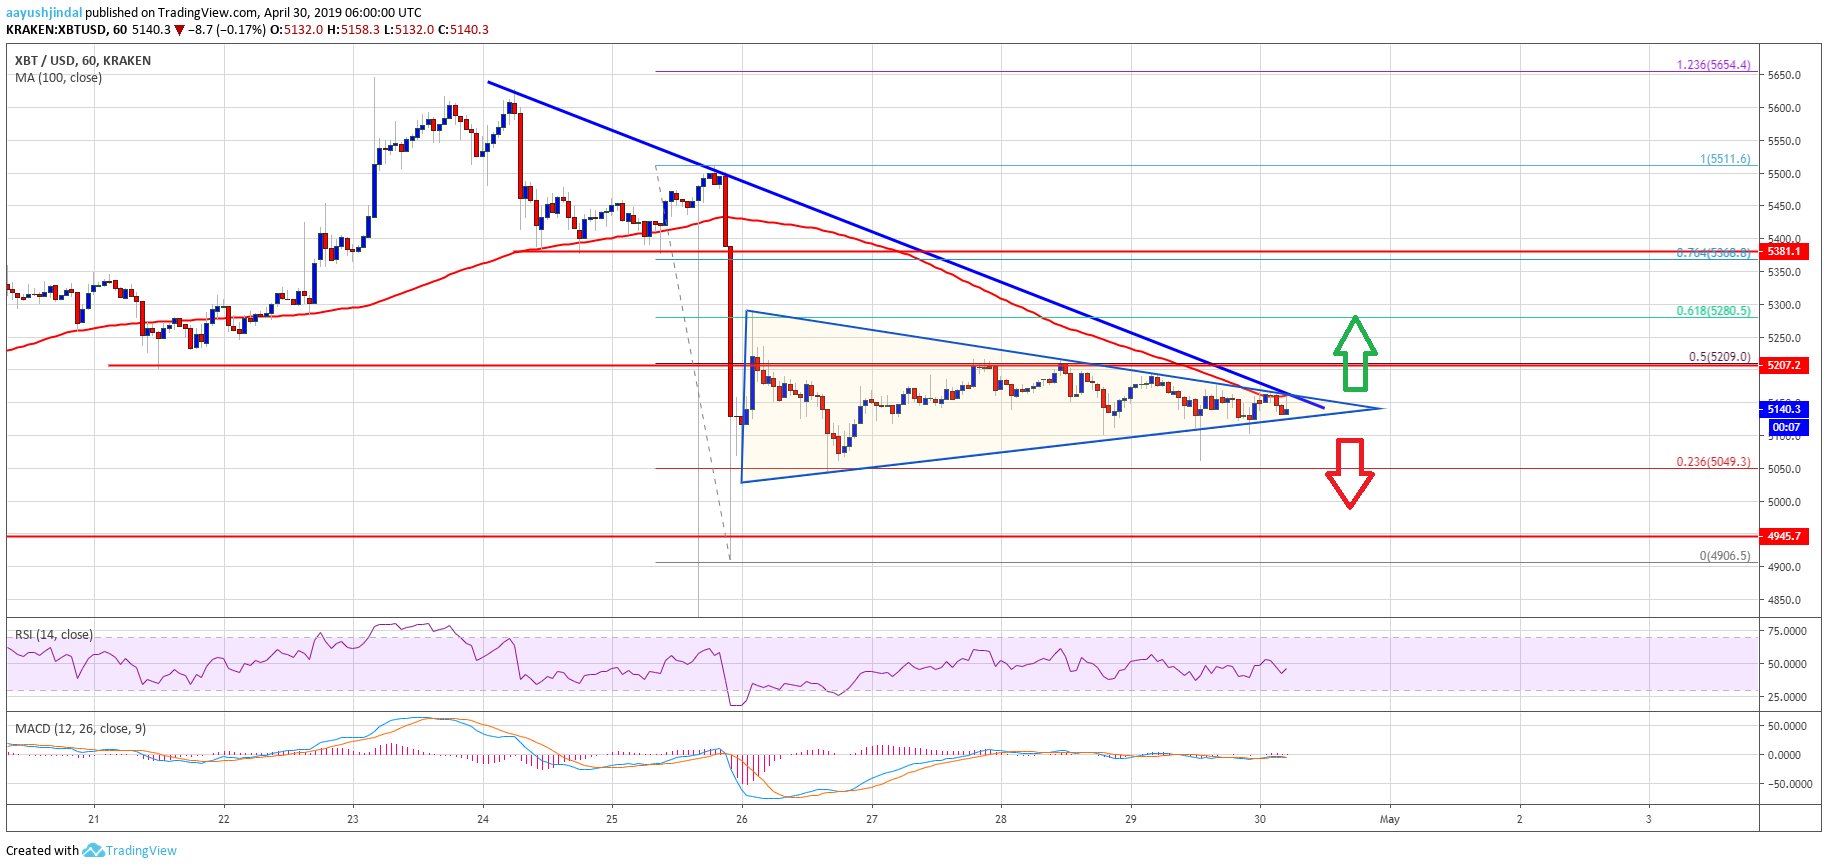 Bitcoin (BTC) Price Flirts With Key Resistance: Upside Break Possible